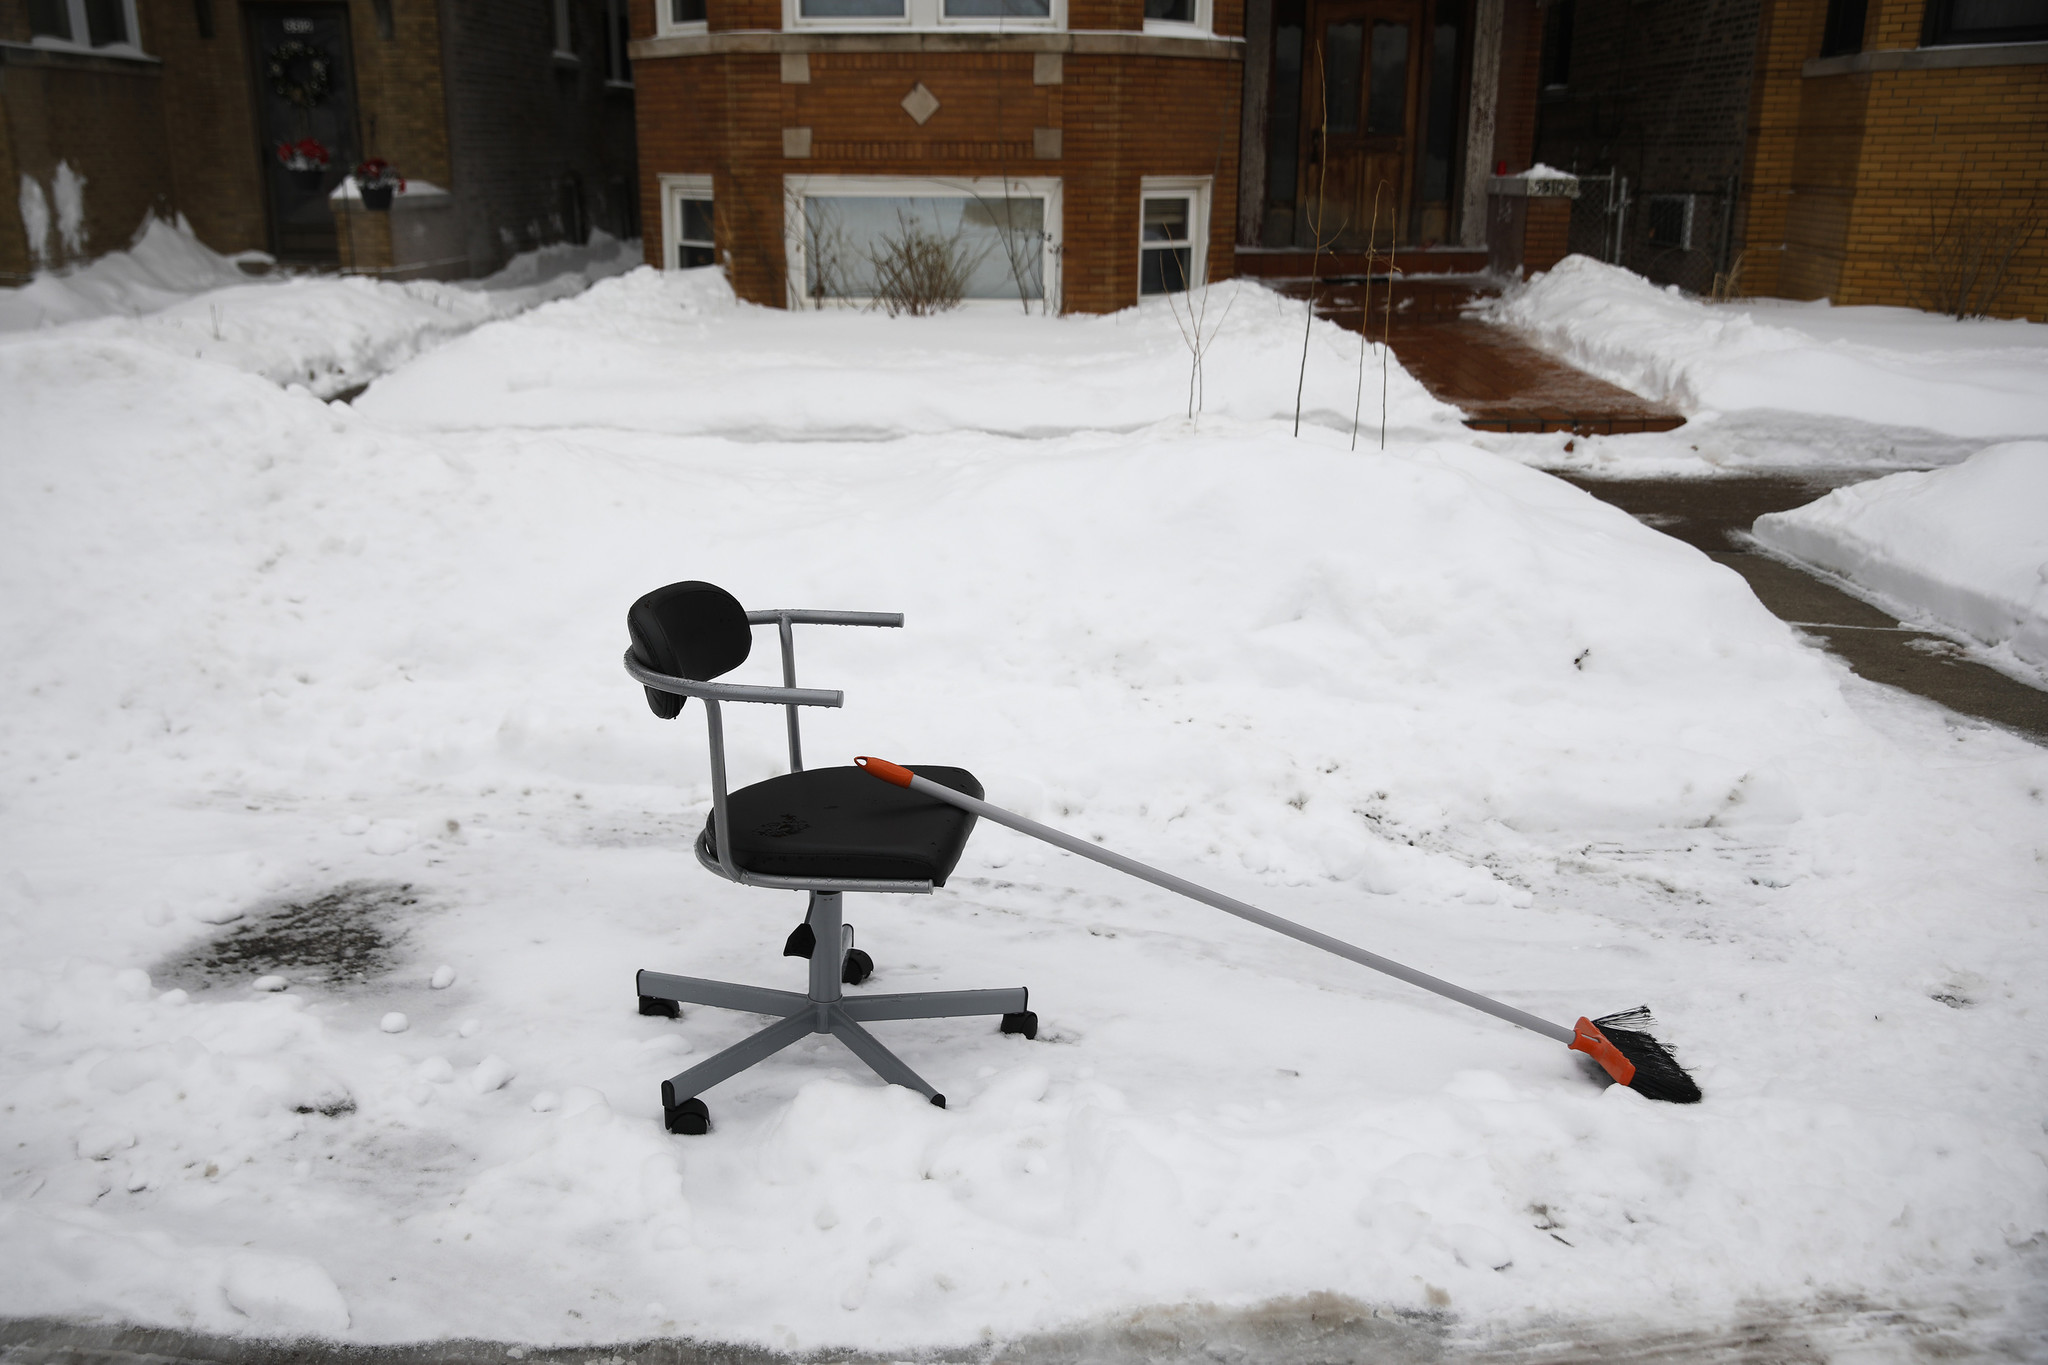 'Dibs' season officially over in Chicago — now go pick up your junk